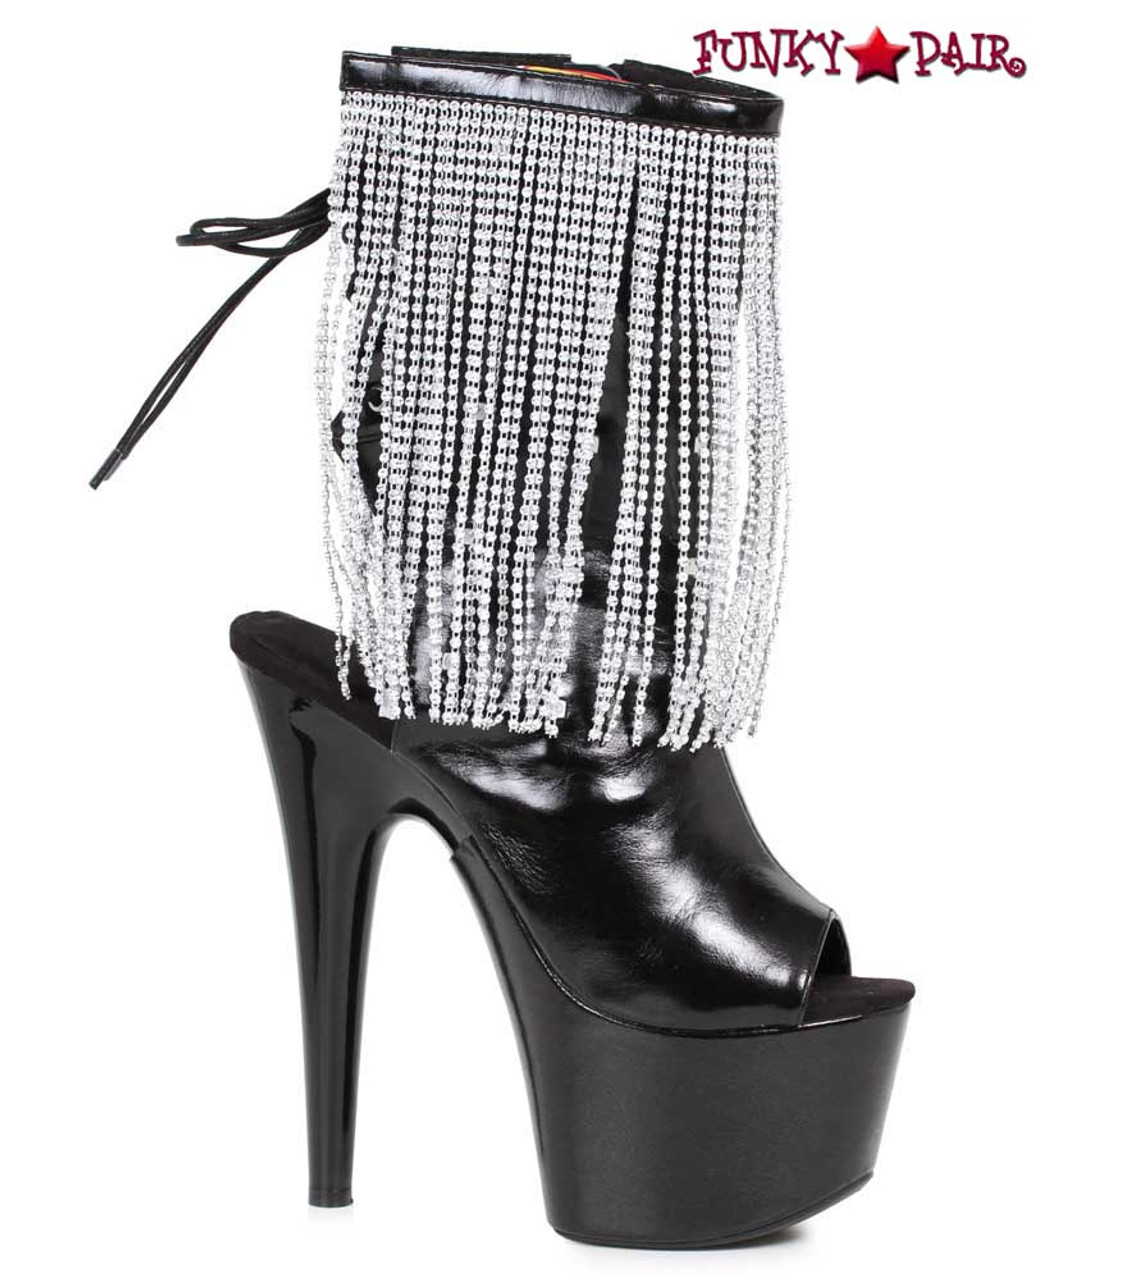 6b2b065f7c7 Ellie Shoes | 709-Dazzle, 7 Inch Open Toe Boots with Fringe